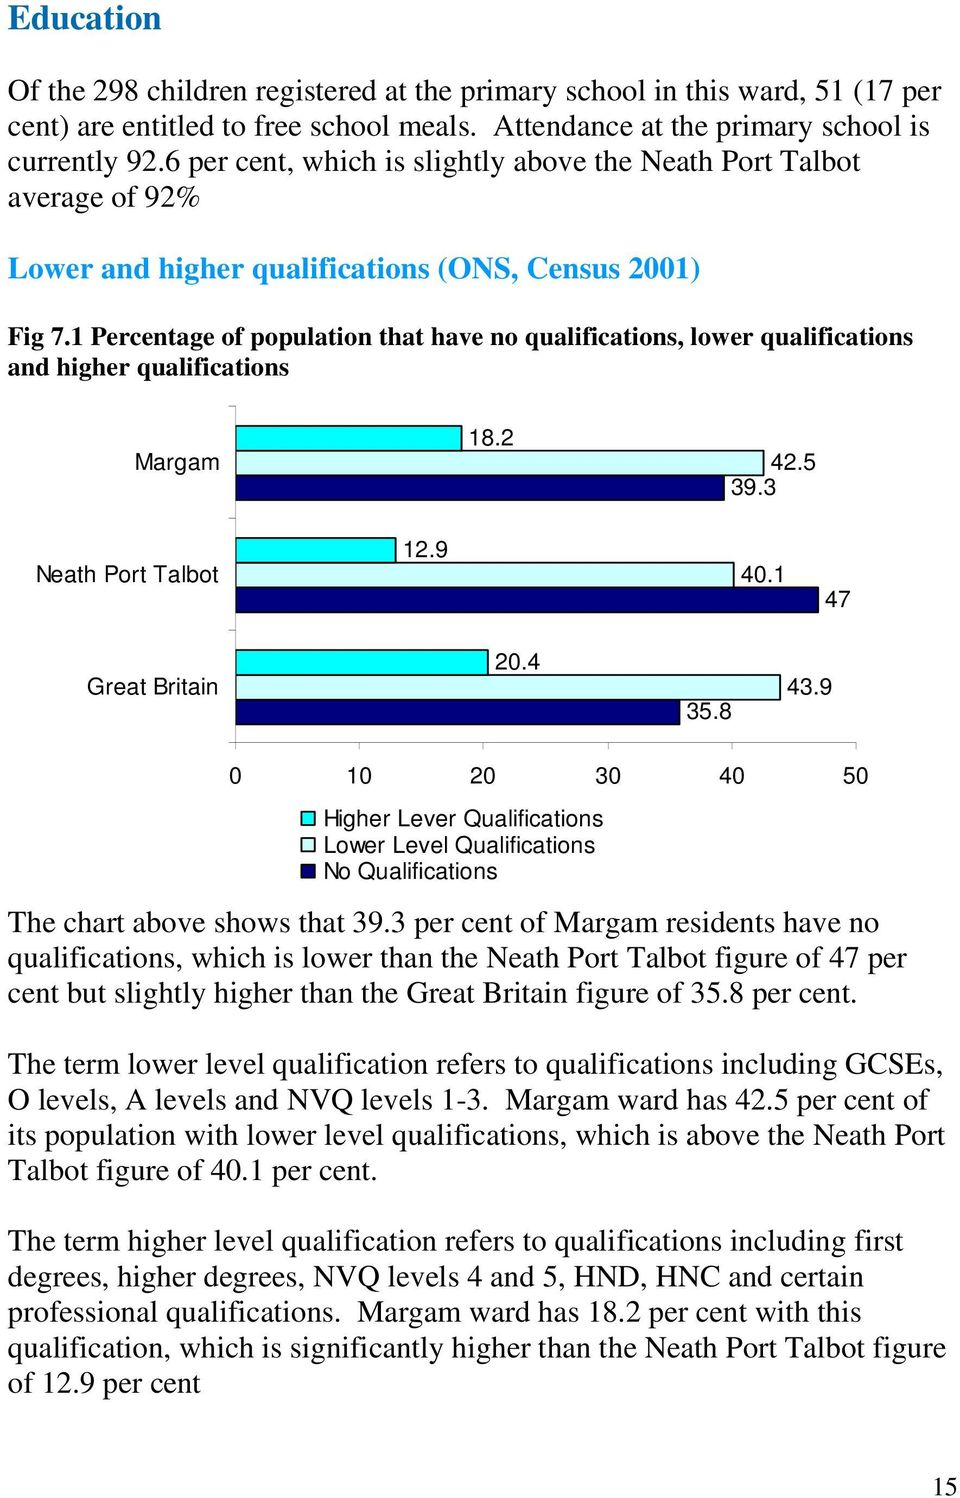 1 Percentage of population that have no qualifications, lower qualifications and higher qualifications Margam 18.2 42.5 39.3 Neath Port Talbot 12.9 40.1 47 Great Britain 20.4 35.8 43.